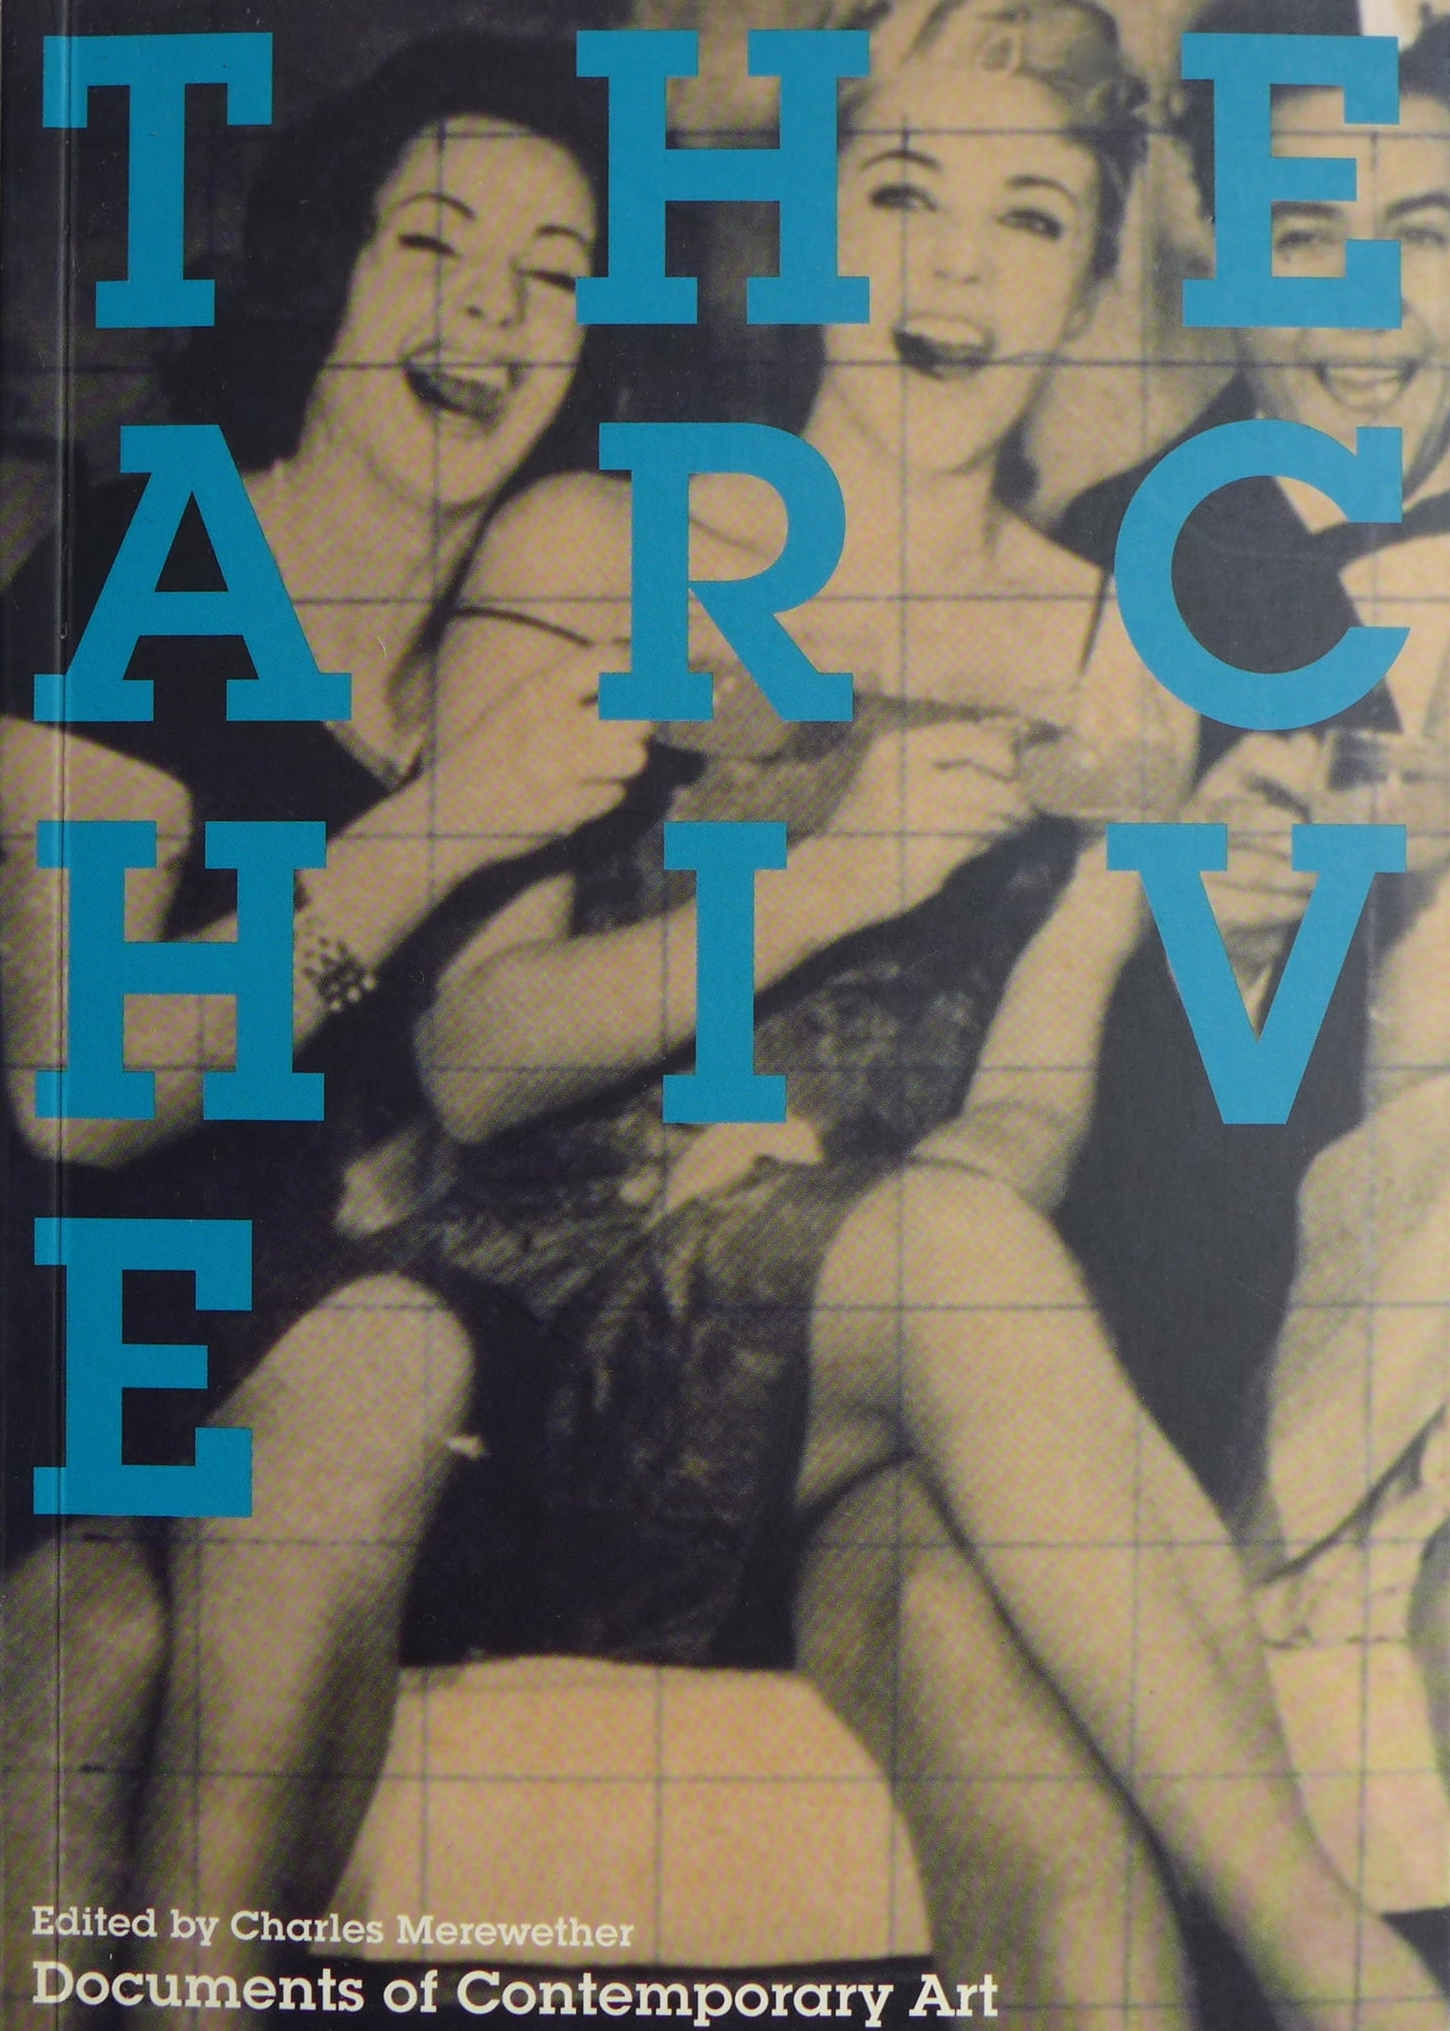 The Archive: Edited by Charles Merewether. Documents of Contemporary Art.  Whitechapel & MIT Press